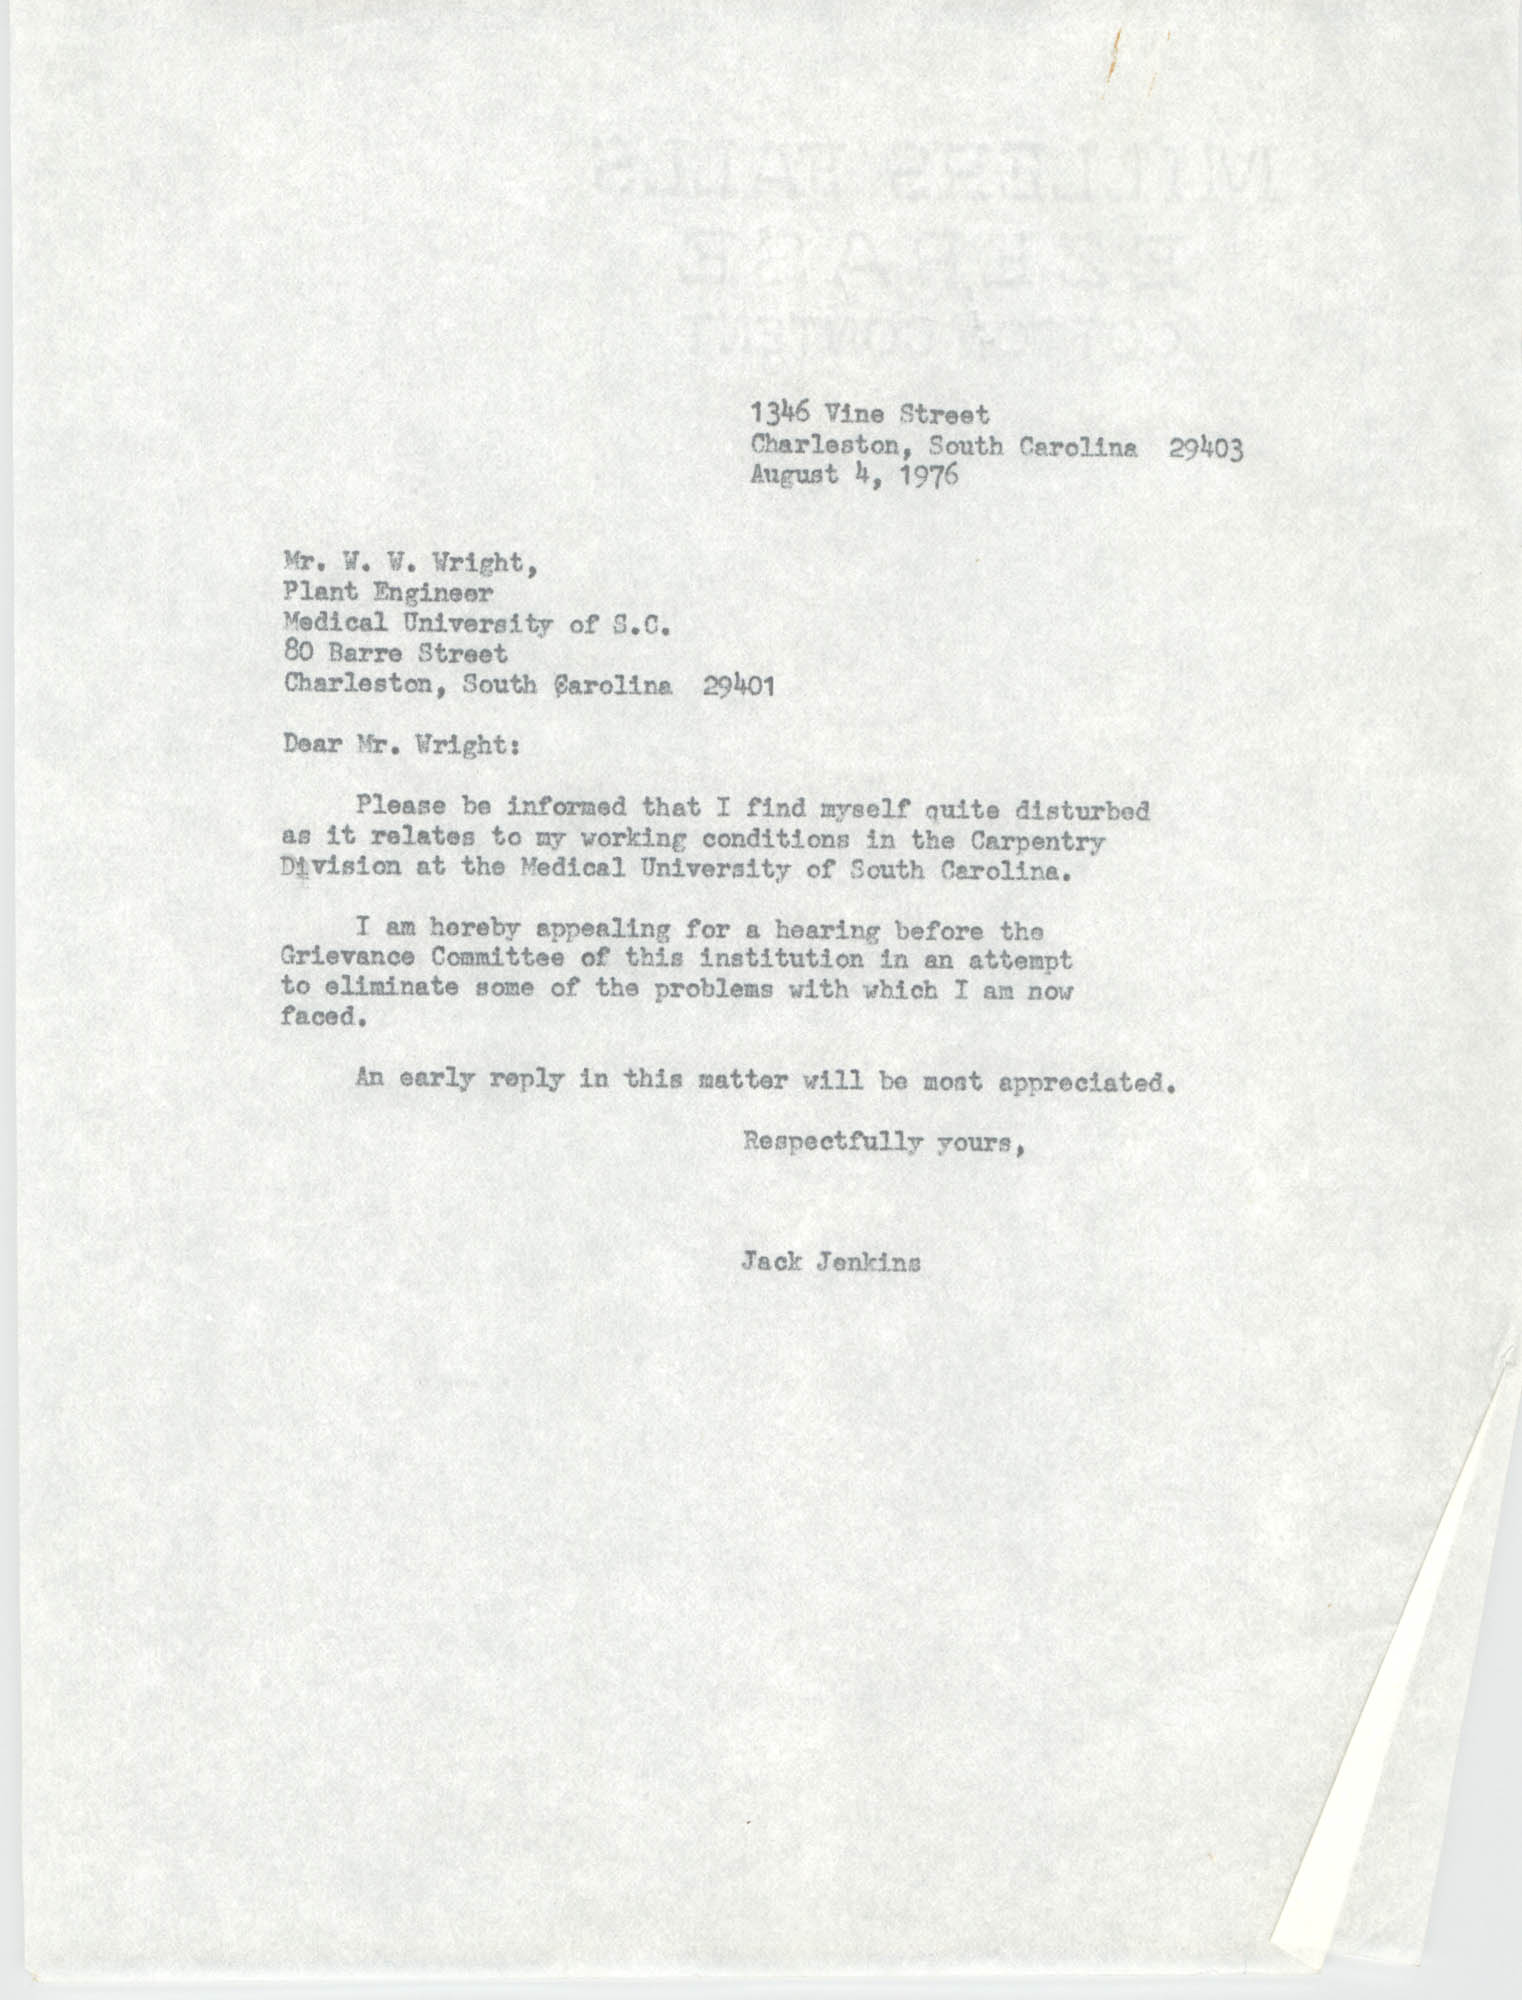 Letter from Jack Jenkins to W. W. Wright, August 4, 1976